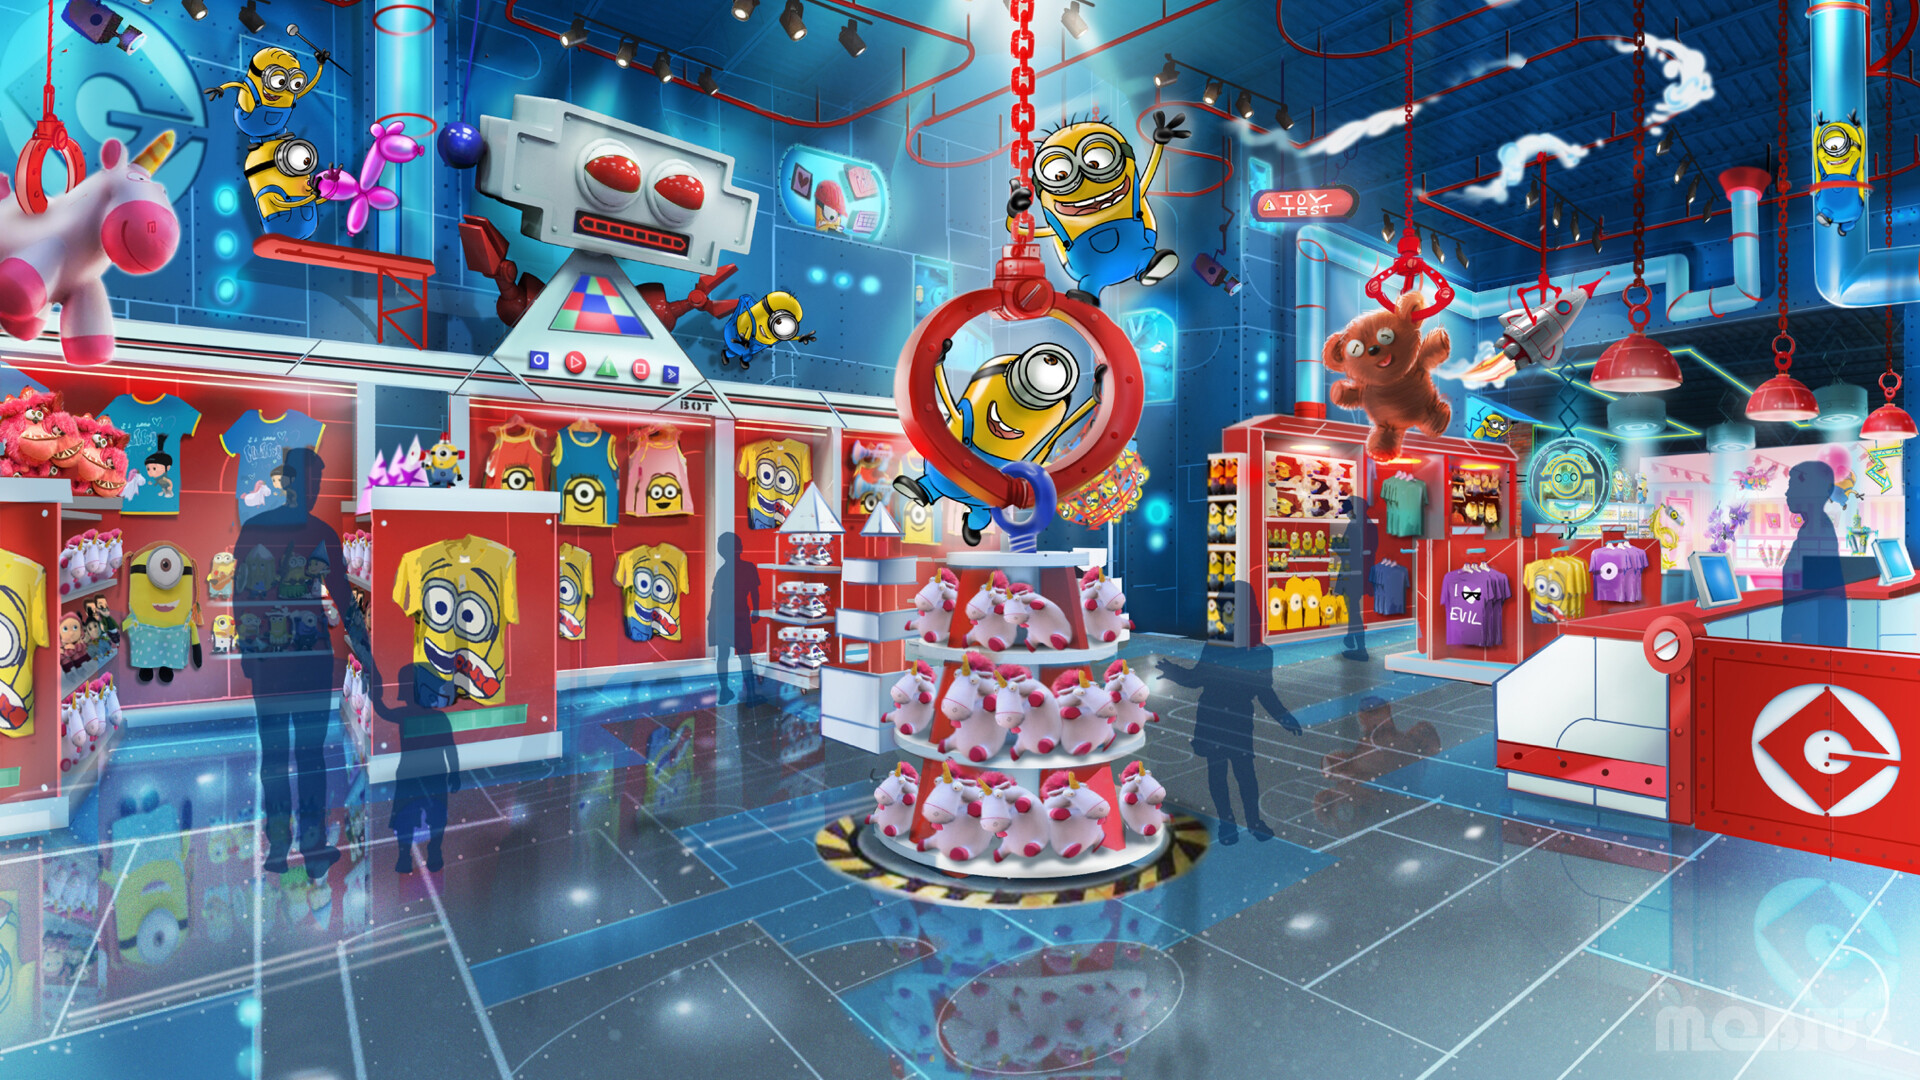 Concept artwork for the interior of the Toy Store retail store area